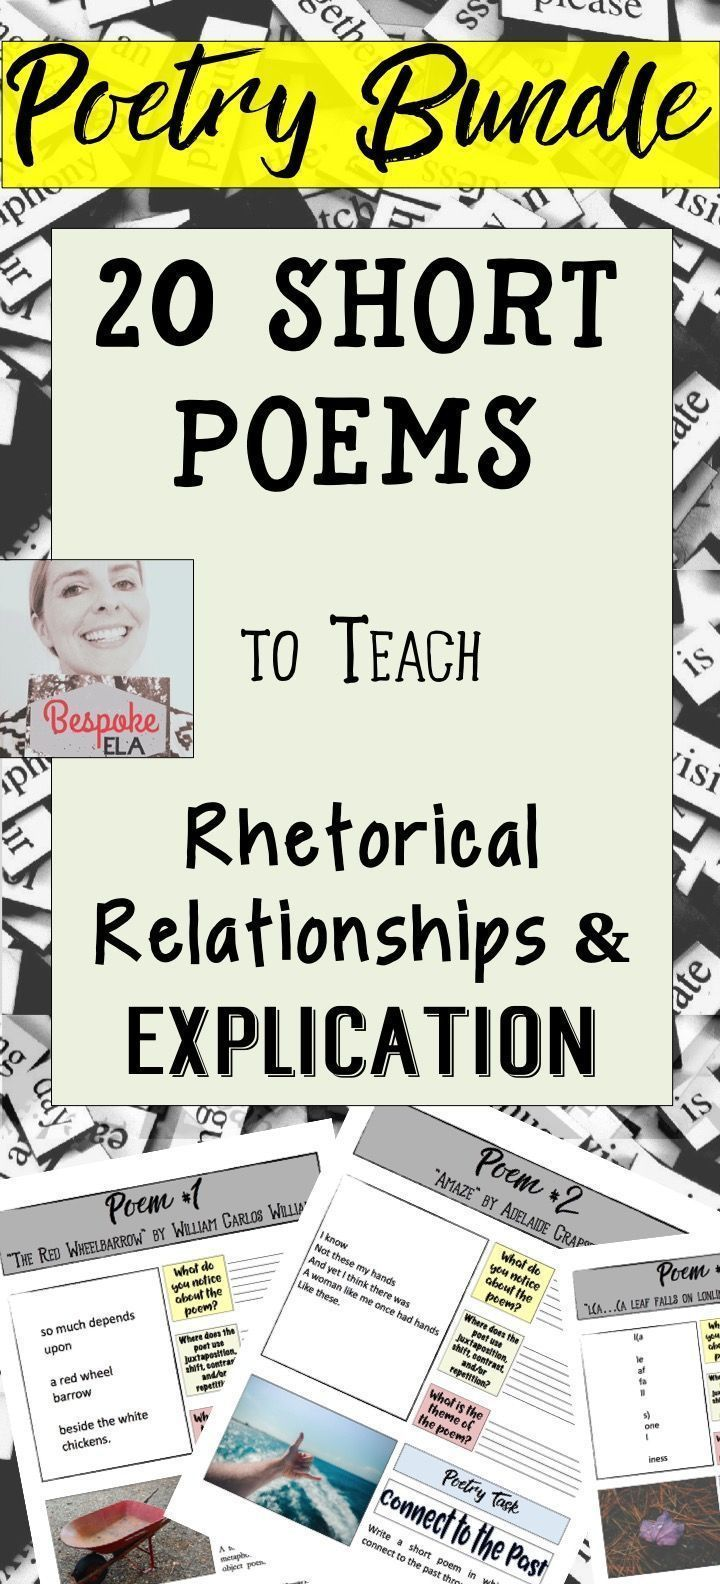 This product by Bespoke ELA contains 20 short poems to analyze for the four, basic rhetorical relationships: juxtaposition, contrast, shift, and repetition.  Excellent for English classes in middle school and high school as mentor texts, mini-lessons, and